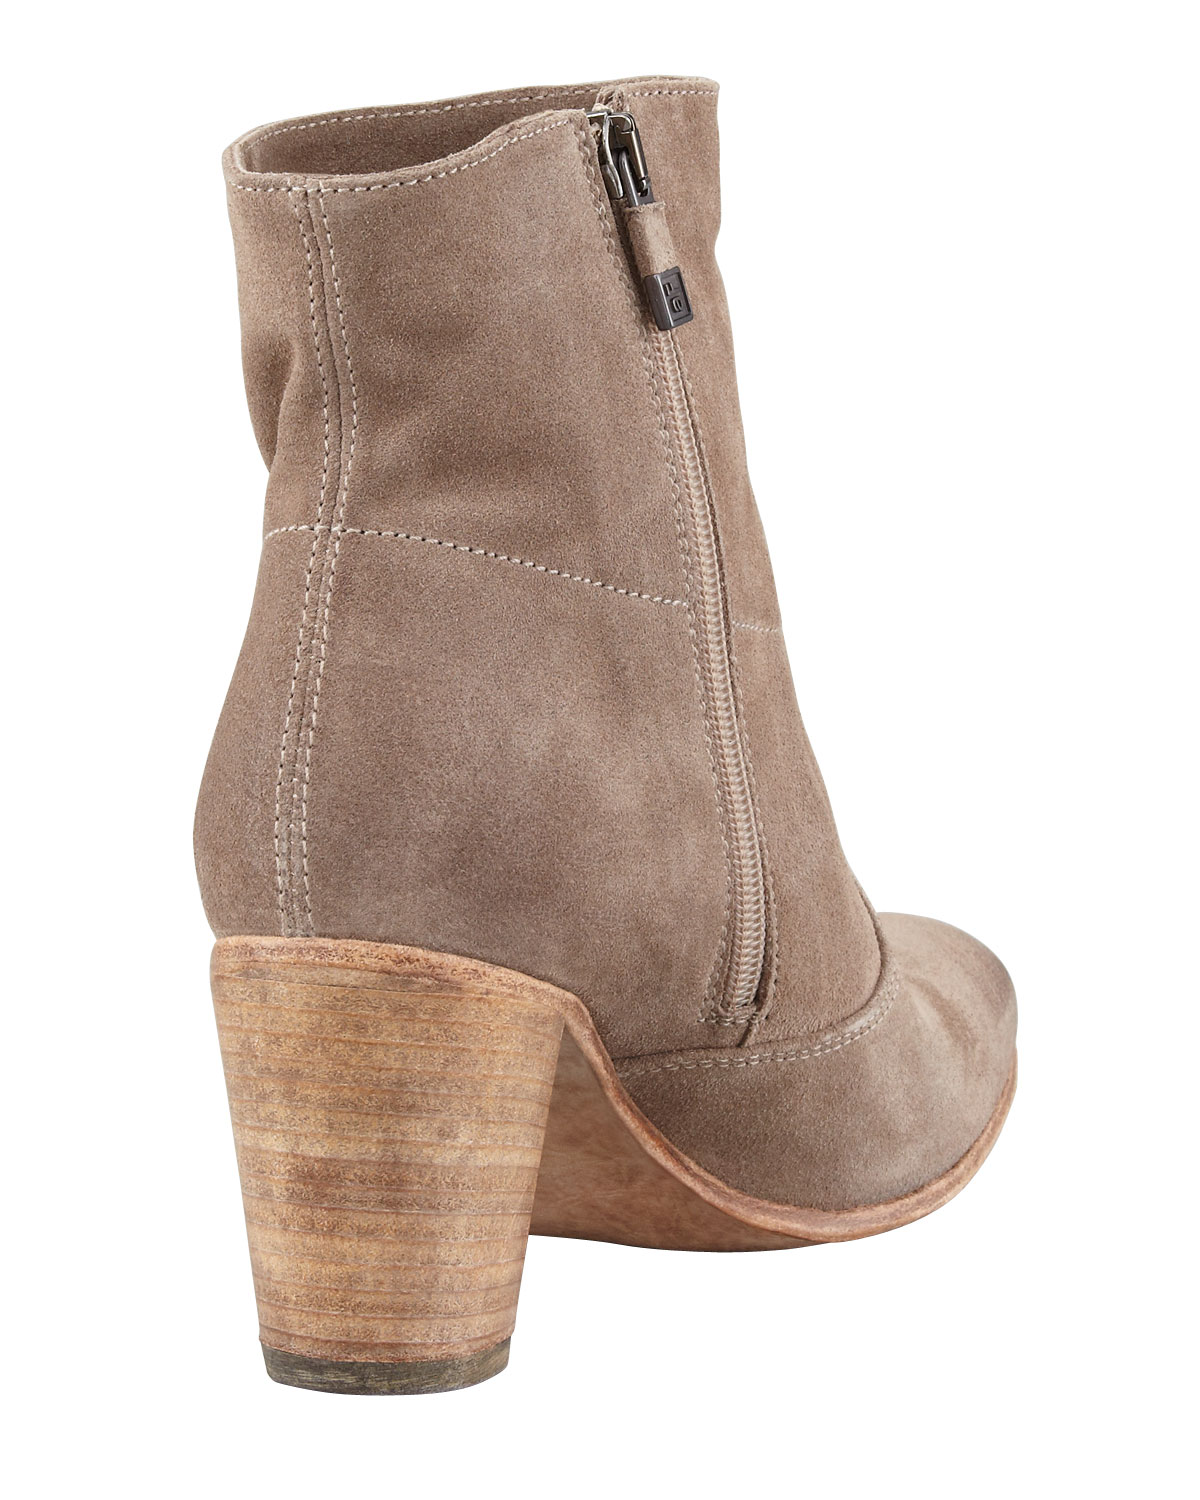 Lyst - Alberto fermani Diva Suede Ankle Boot Taupe in Brown